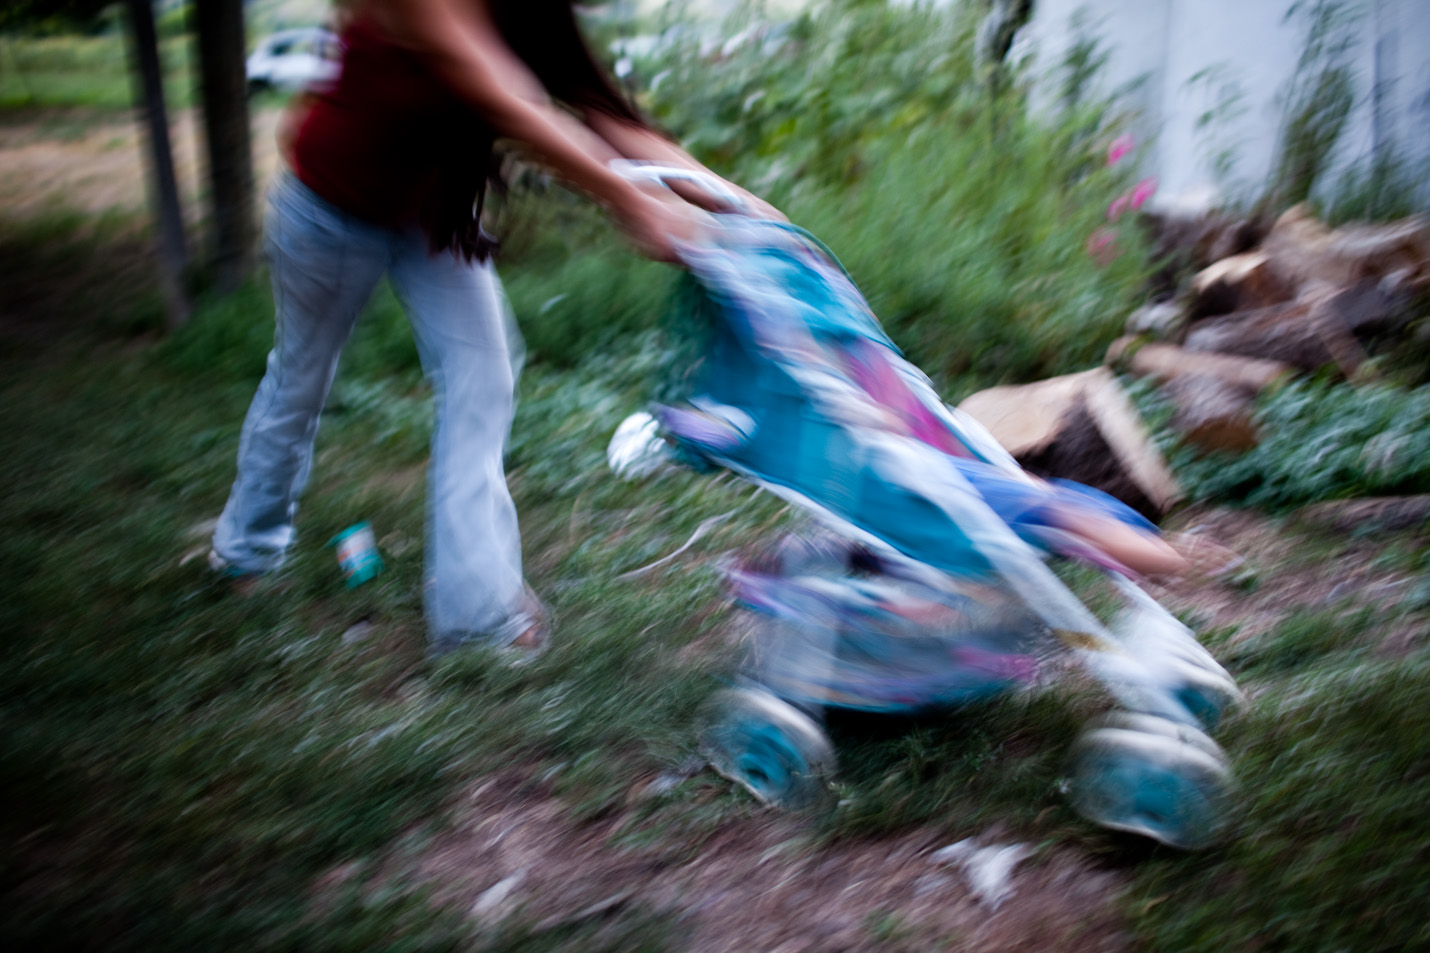 Alexis Oxendine pushes a stroller through the front yard in Pine Ridge, South Dakota.  Many houses lack basic amenities such as running water and electricity.